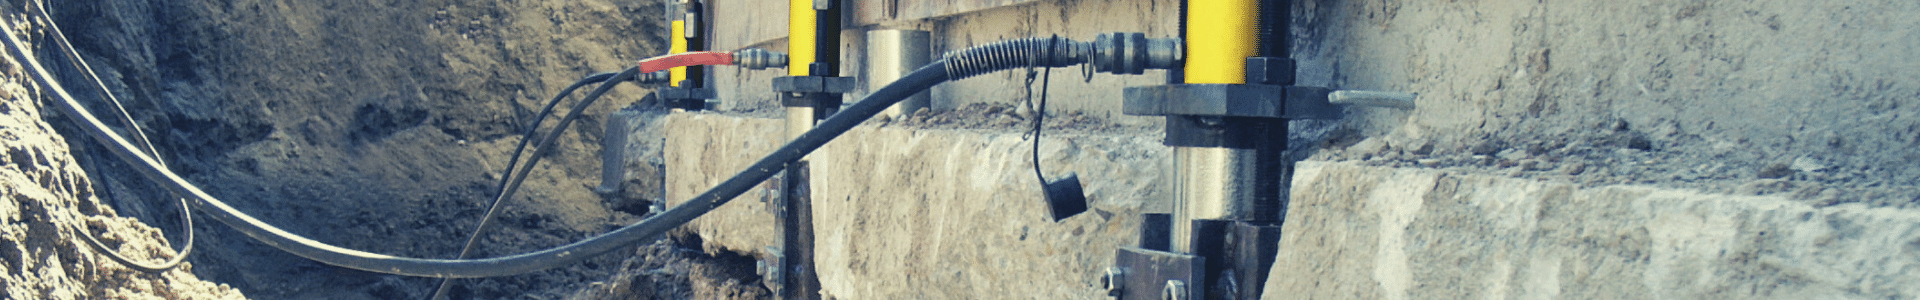 banner for foundation repair pages